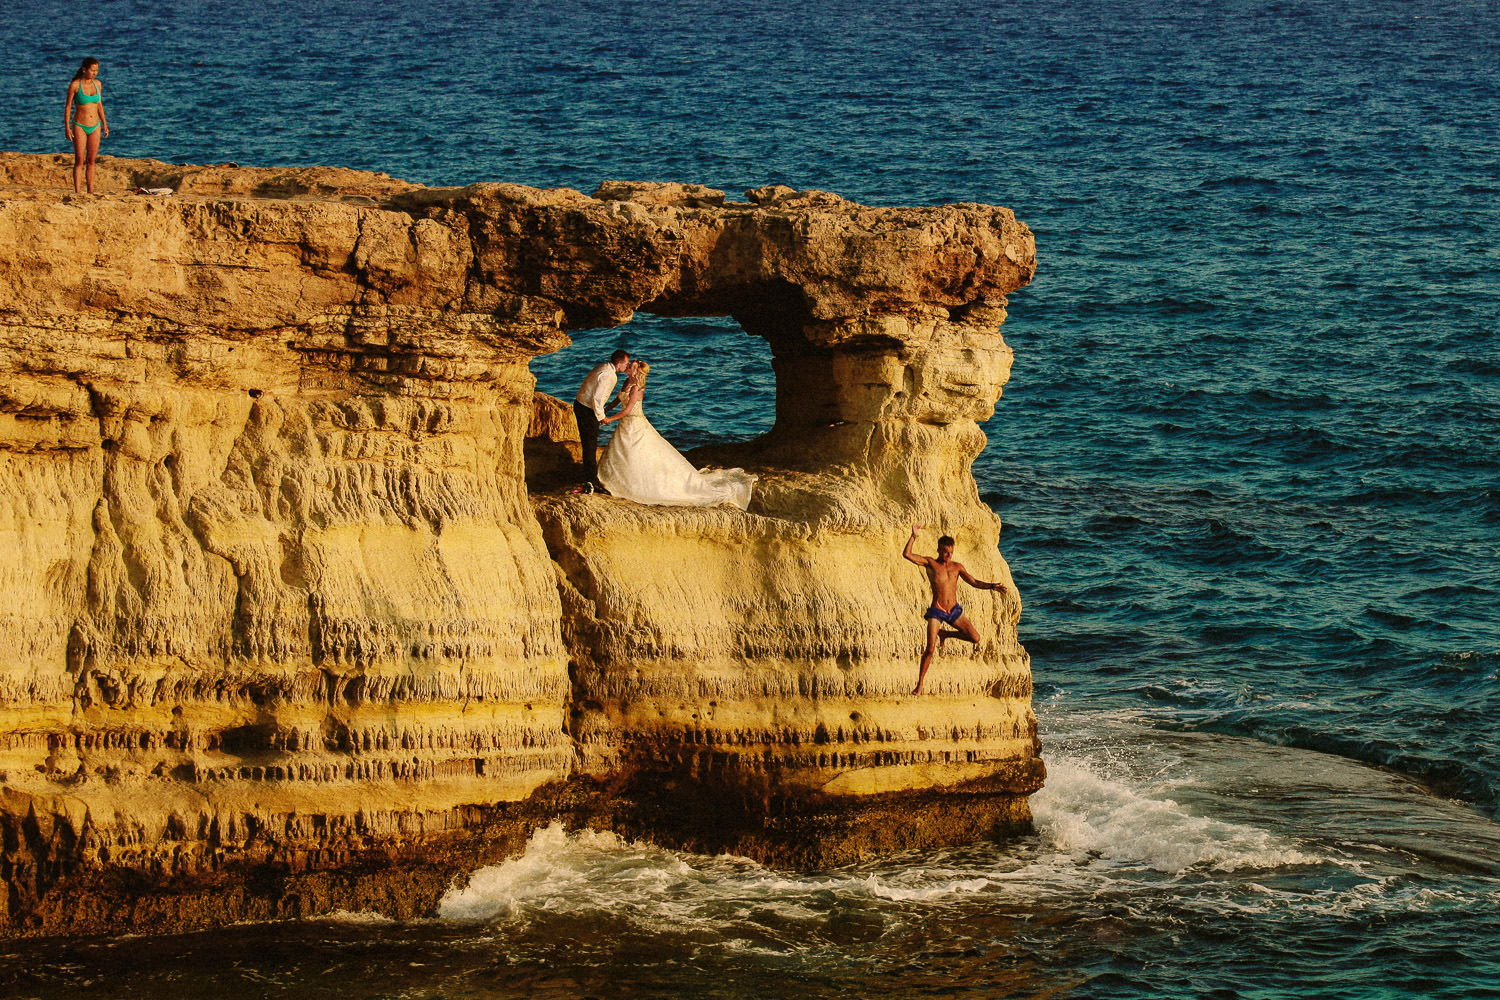 Man jumping off cliff with bride and groom in hole sea caves in Cyprus